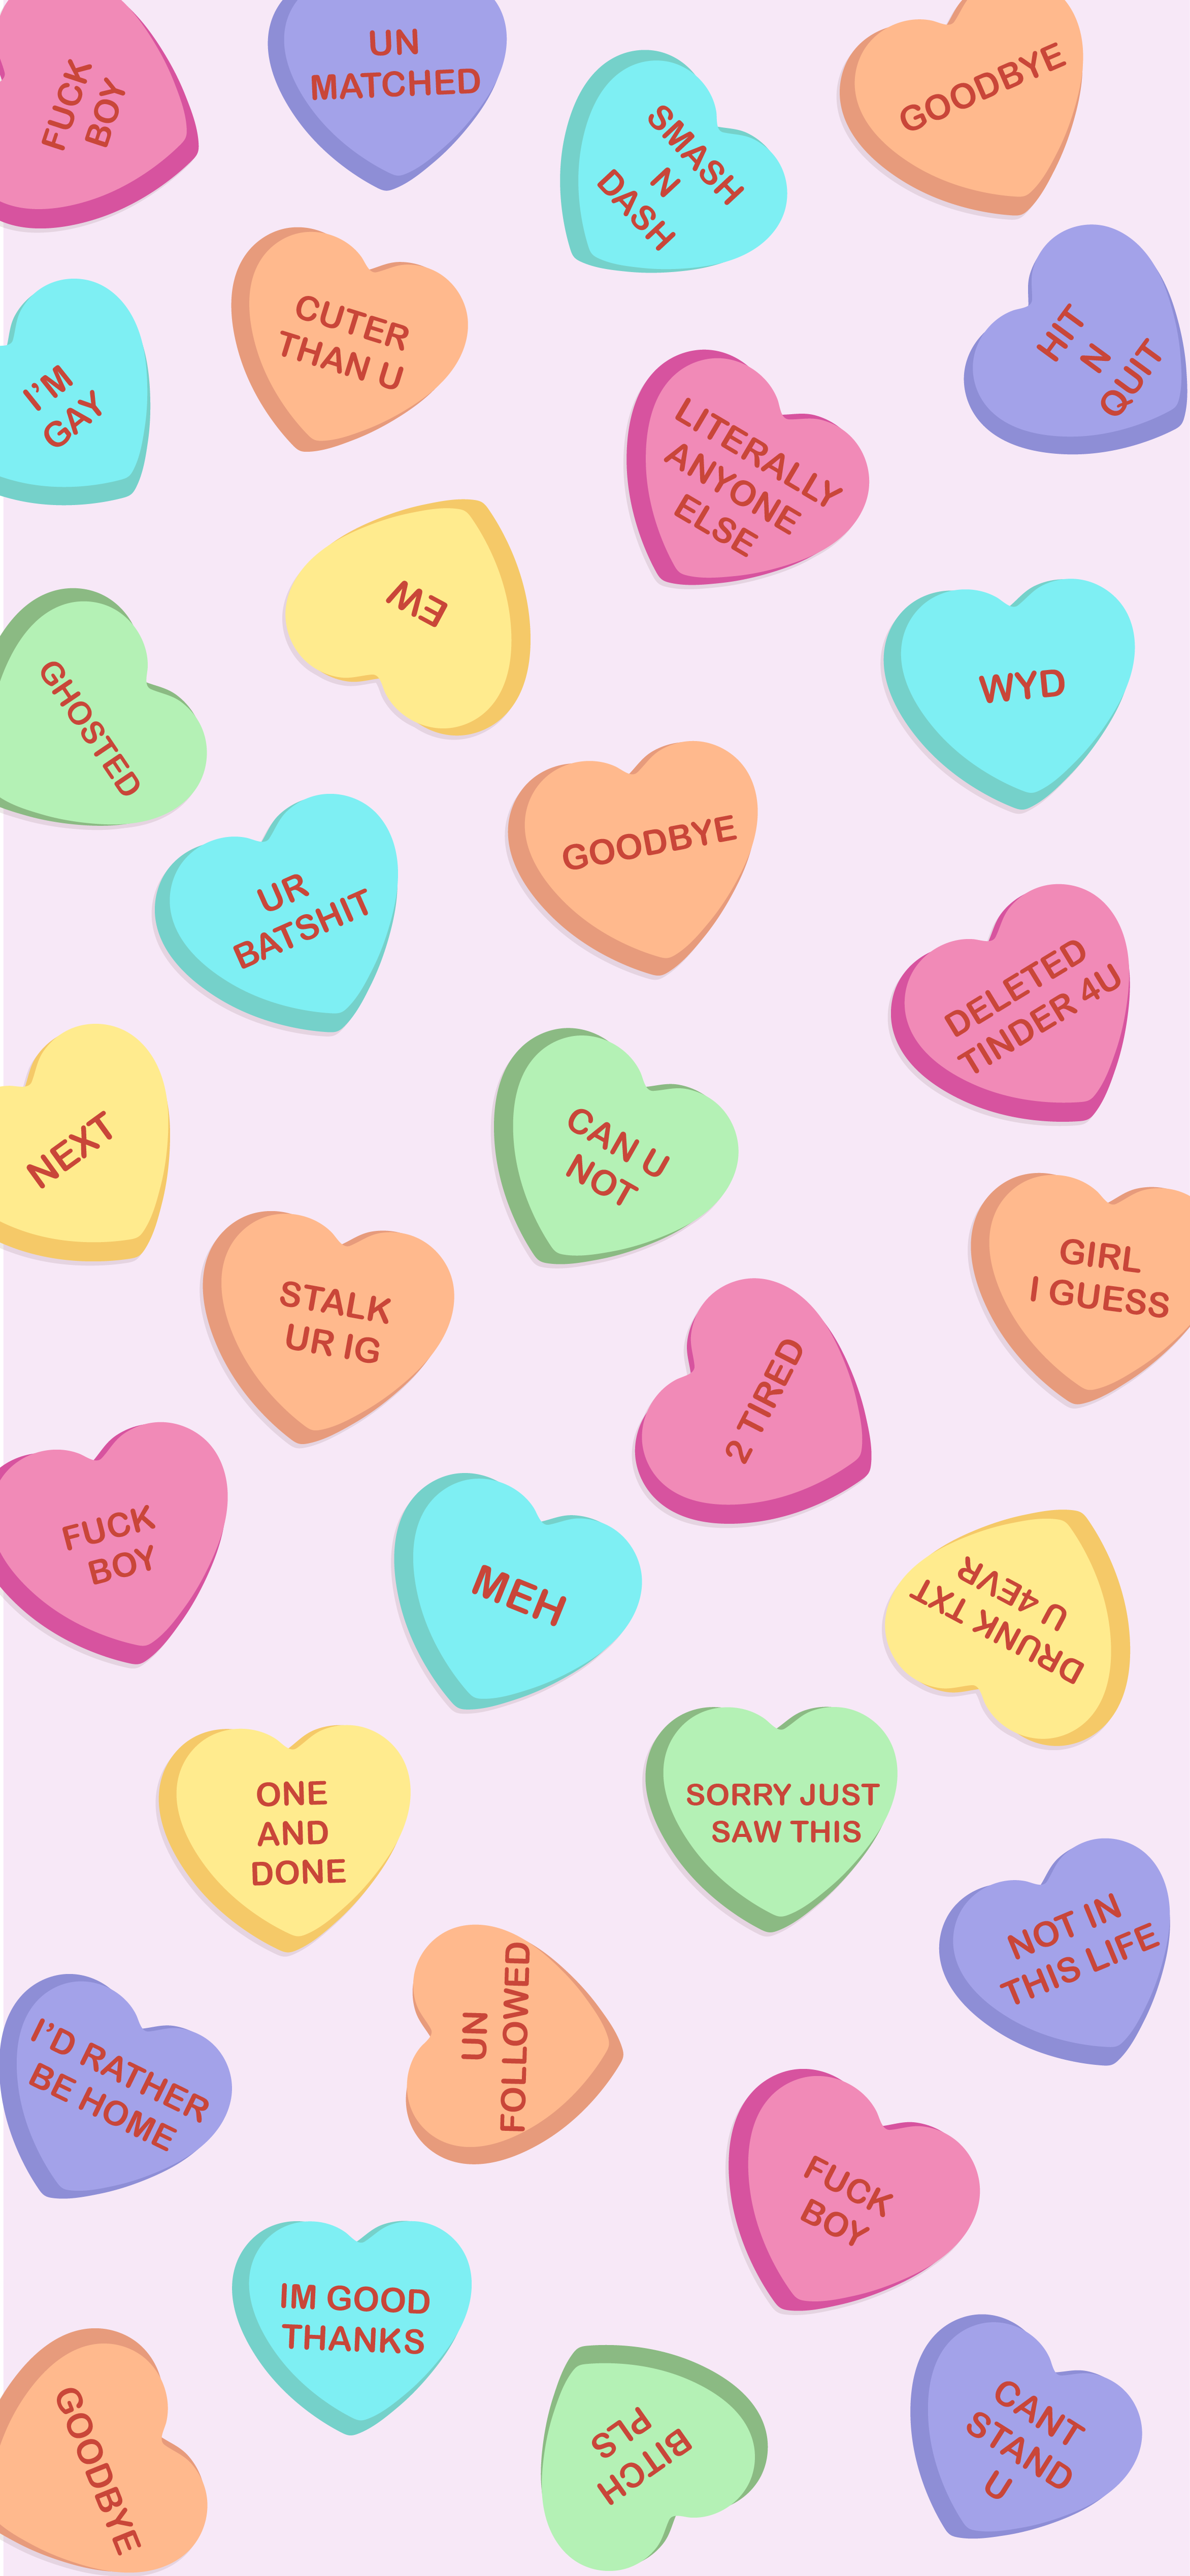 Millennial Candy Hearts Illustration Phone Wallpaper Heart Wallpaper Heart Illustration Pink Aesthetic